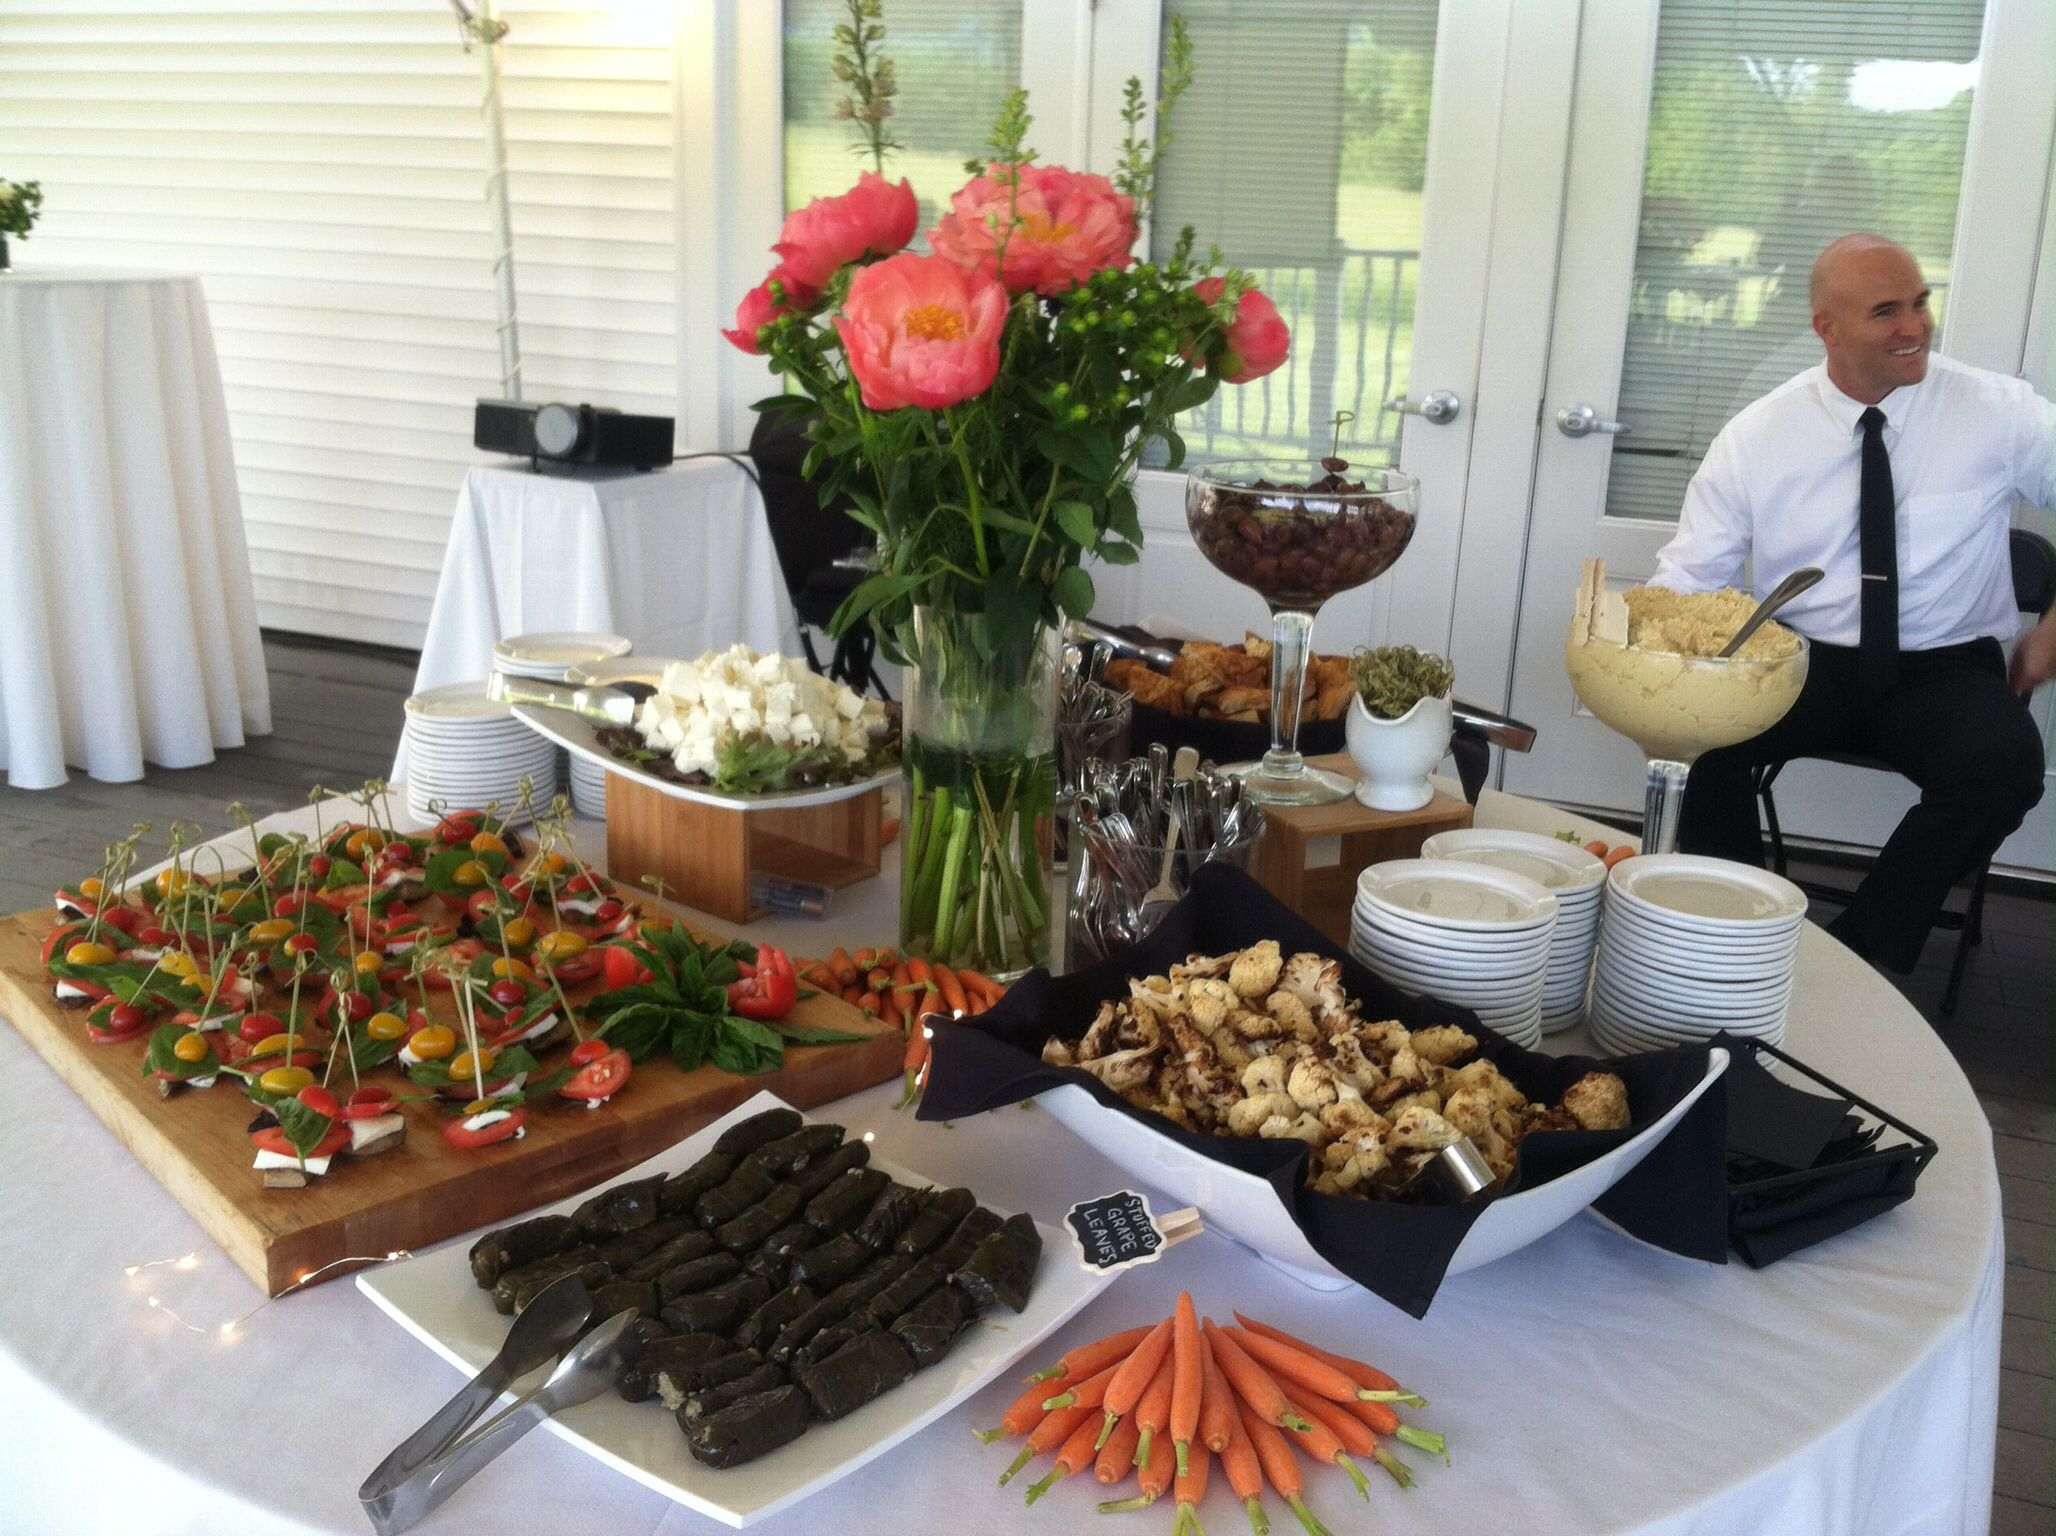 Appetizer table appetizers table event catering catering